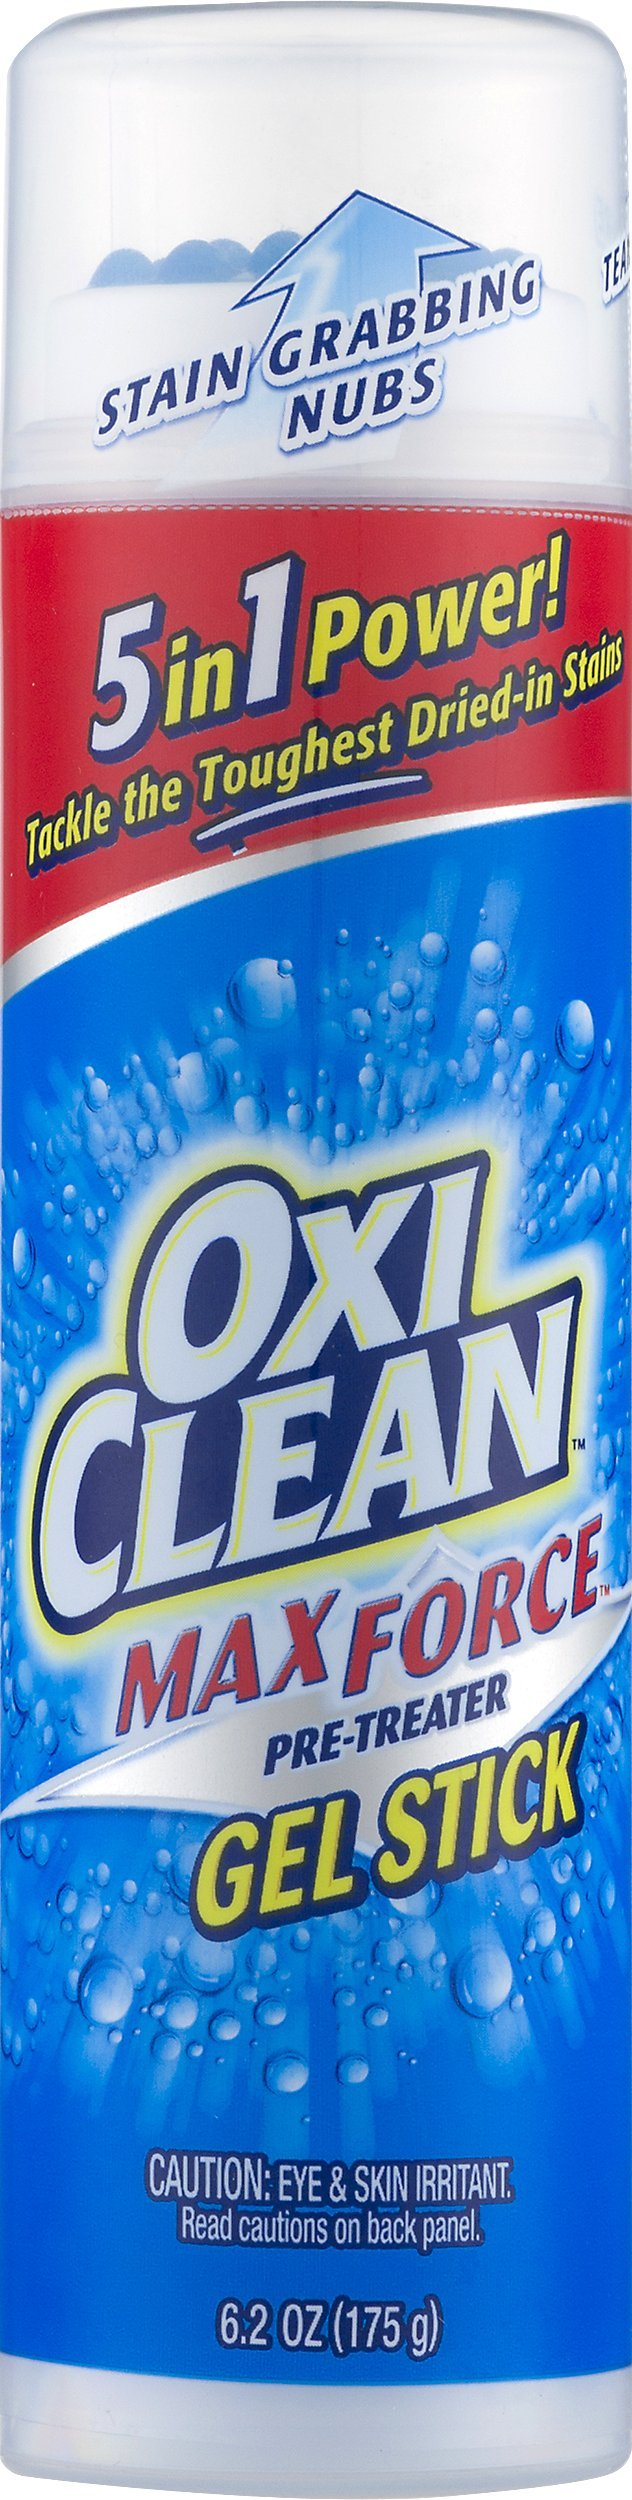 OxiClean Max Force Gel Stick, 6.2 Oz (Pack of 12) by OxiClean (Image #1)